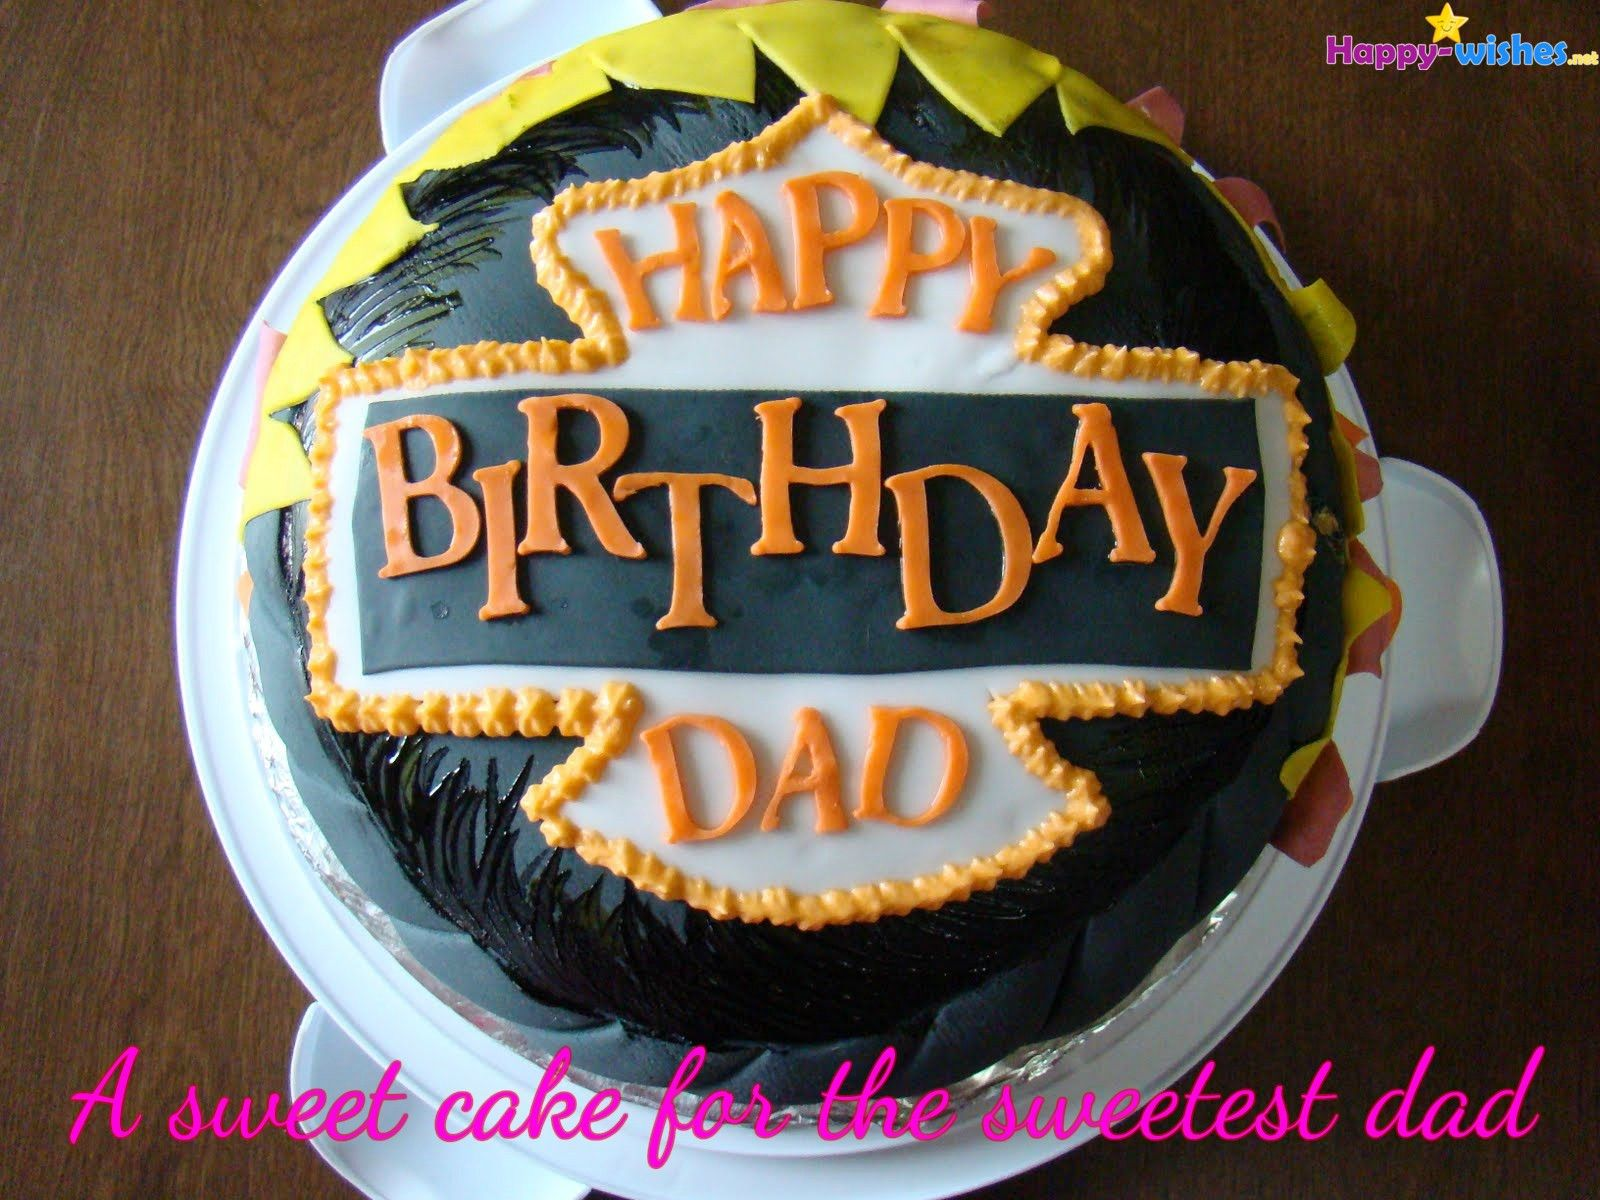 Awe Inspiring Happy Birthday Wishes For Dad Quotes Images And Memes Dad Funny Birthday Cards Online Inifodamsfinfo